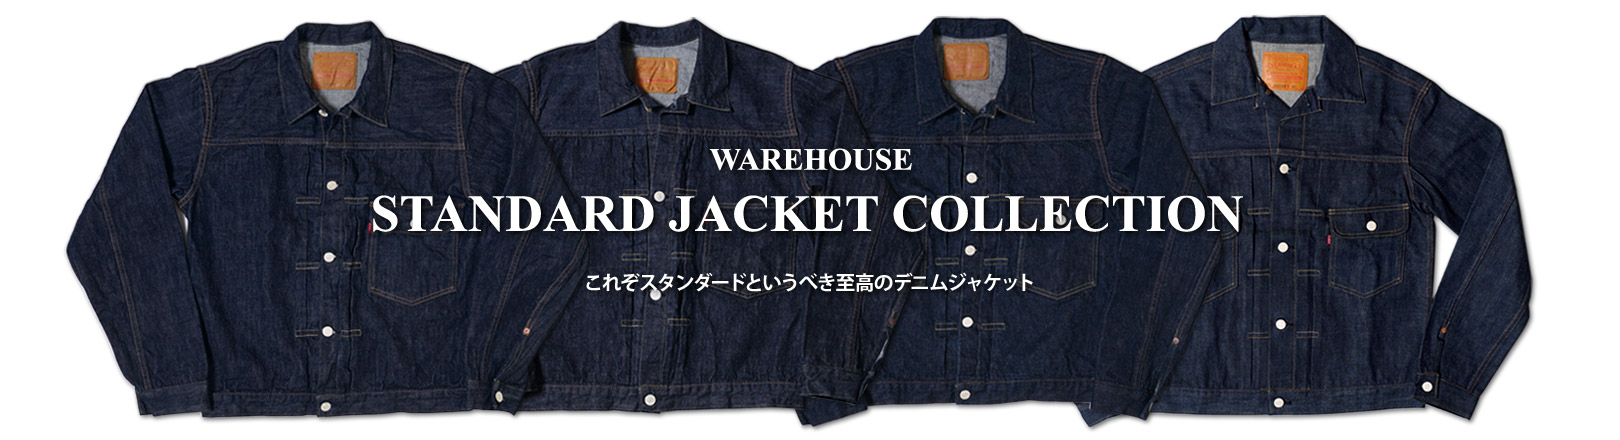 WAREHOUSE STANDARD JACKET COLLECTION